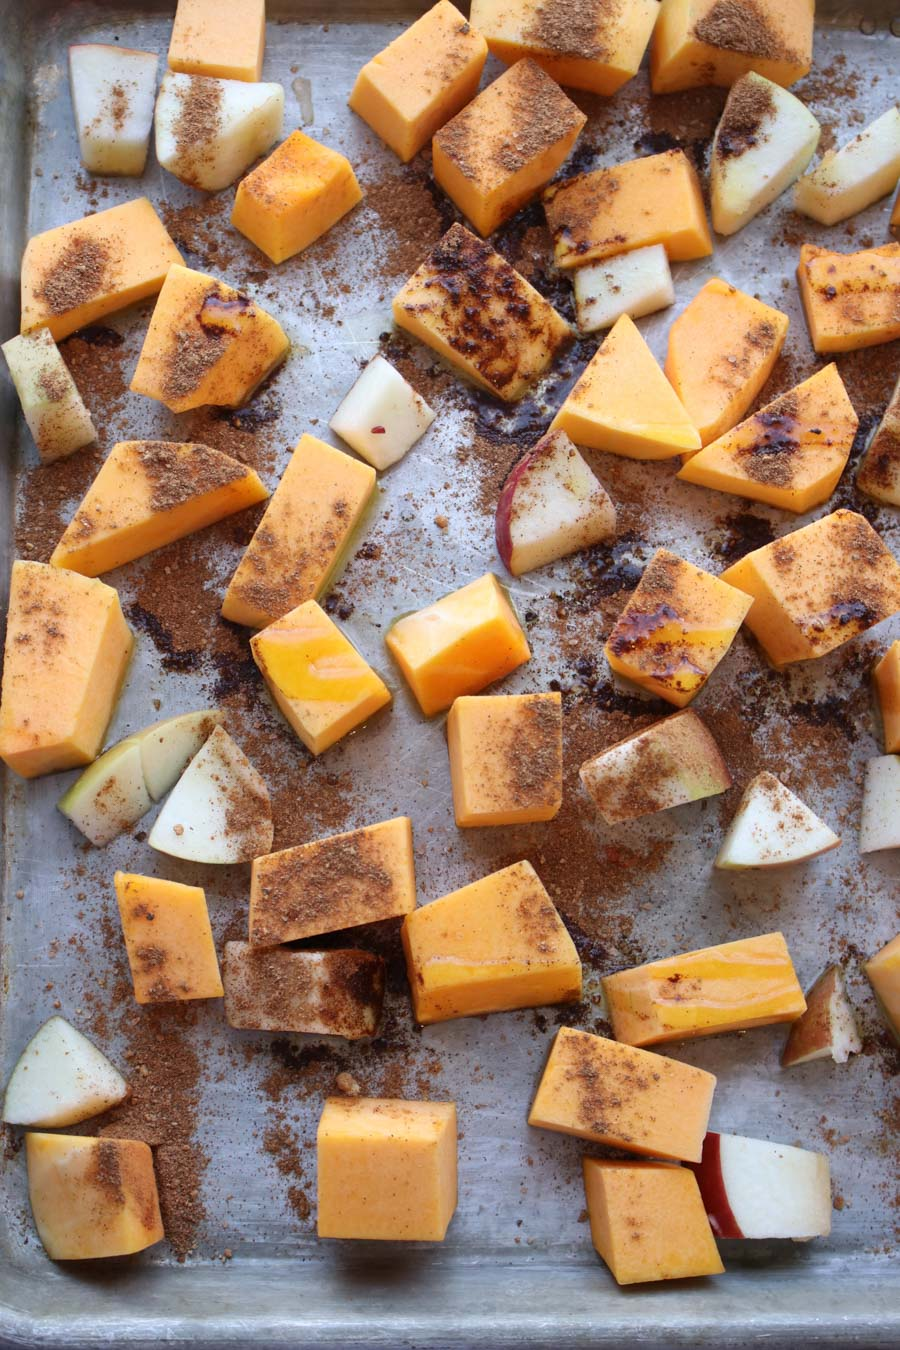 diced squash and apples on roasting pan